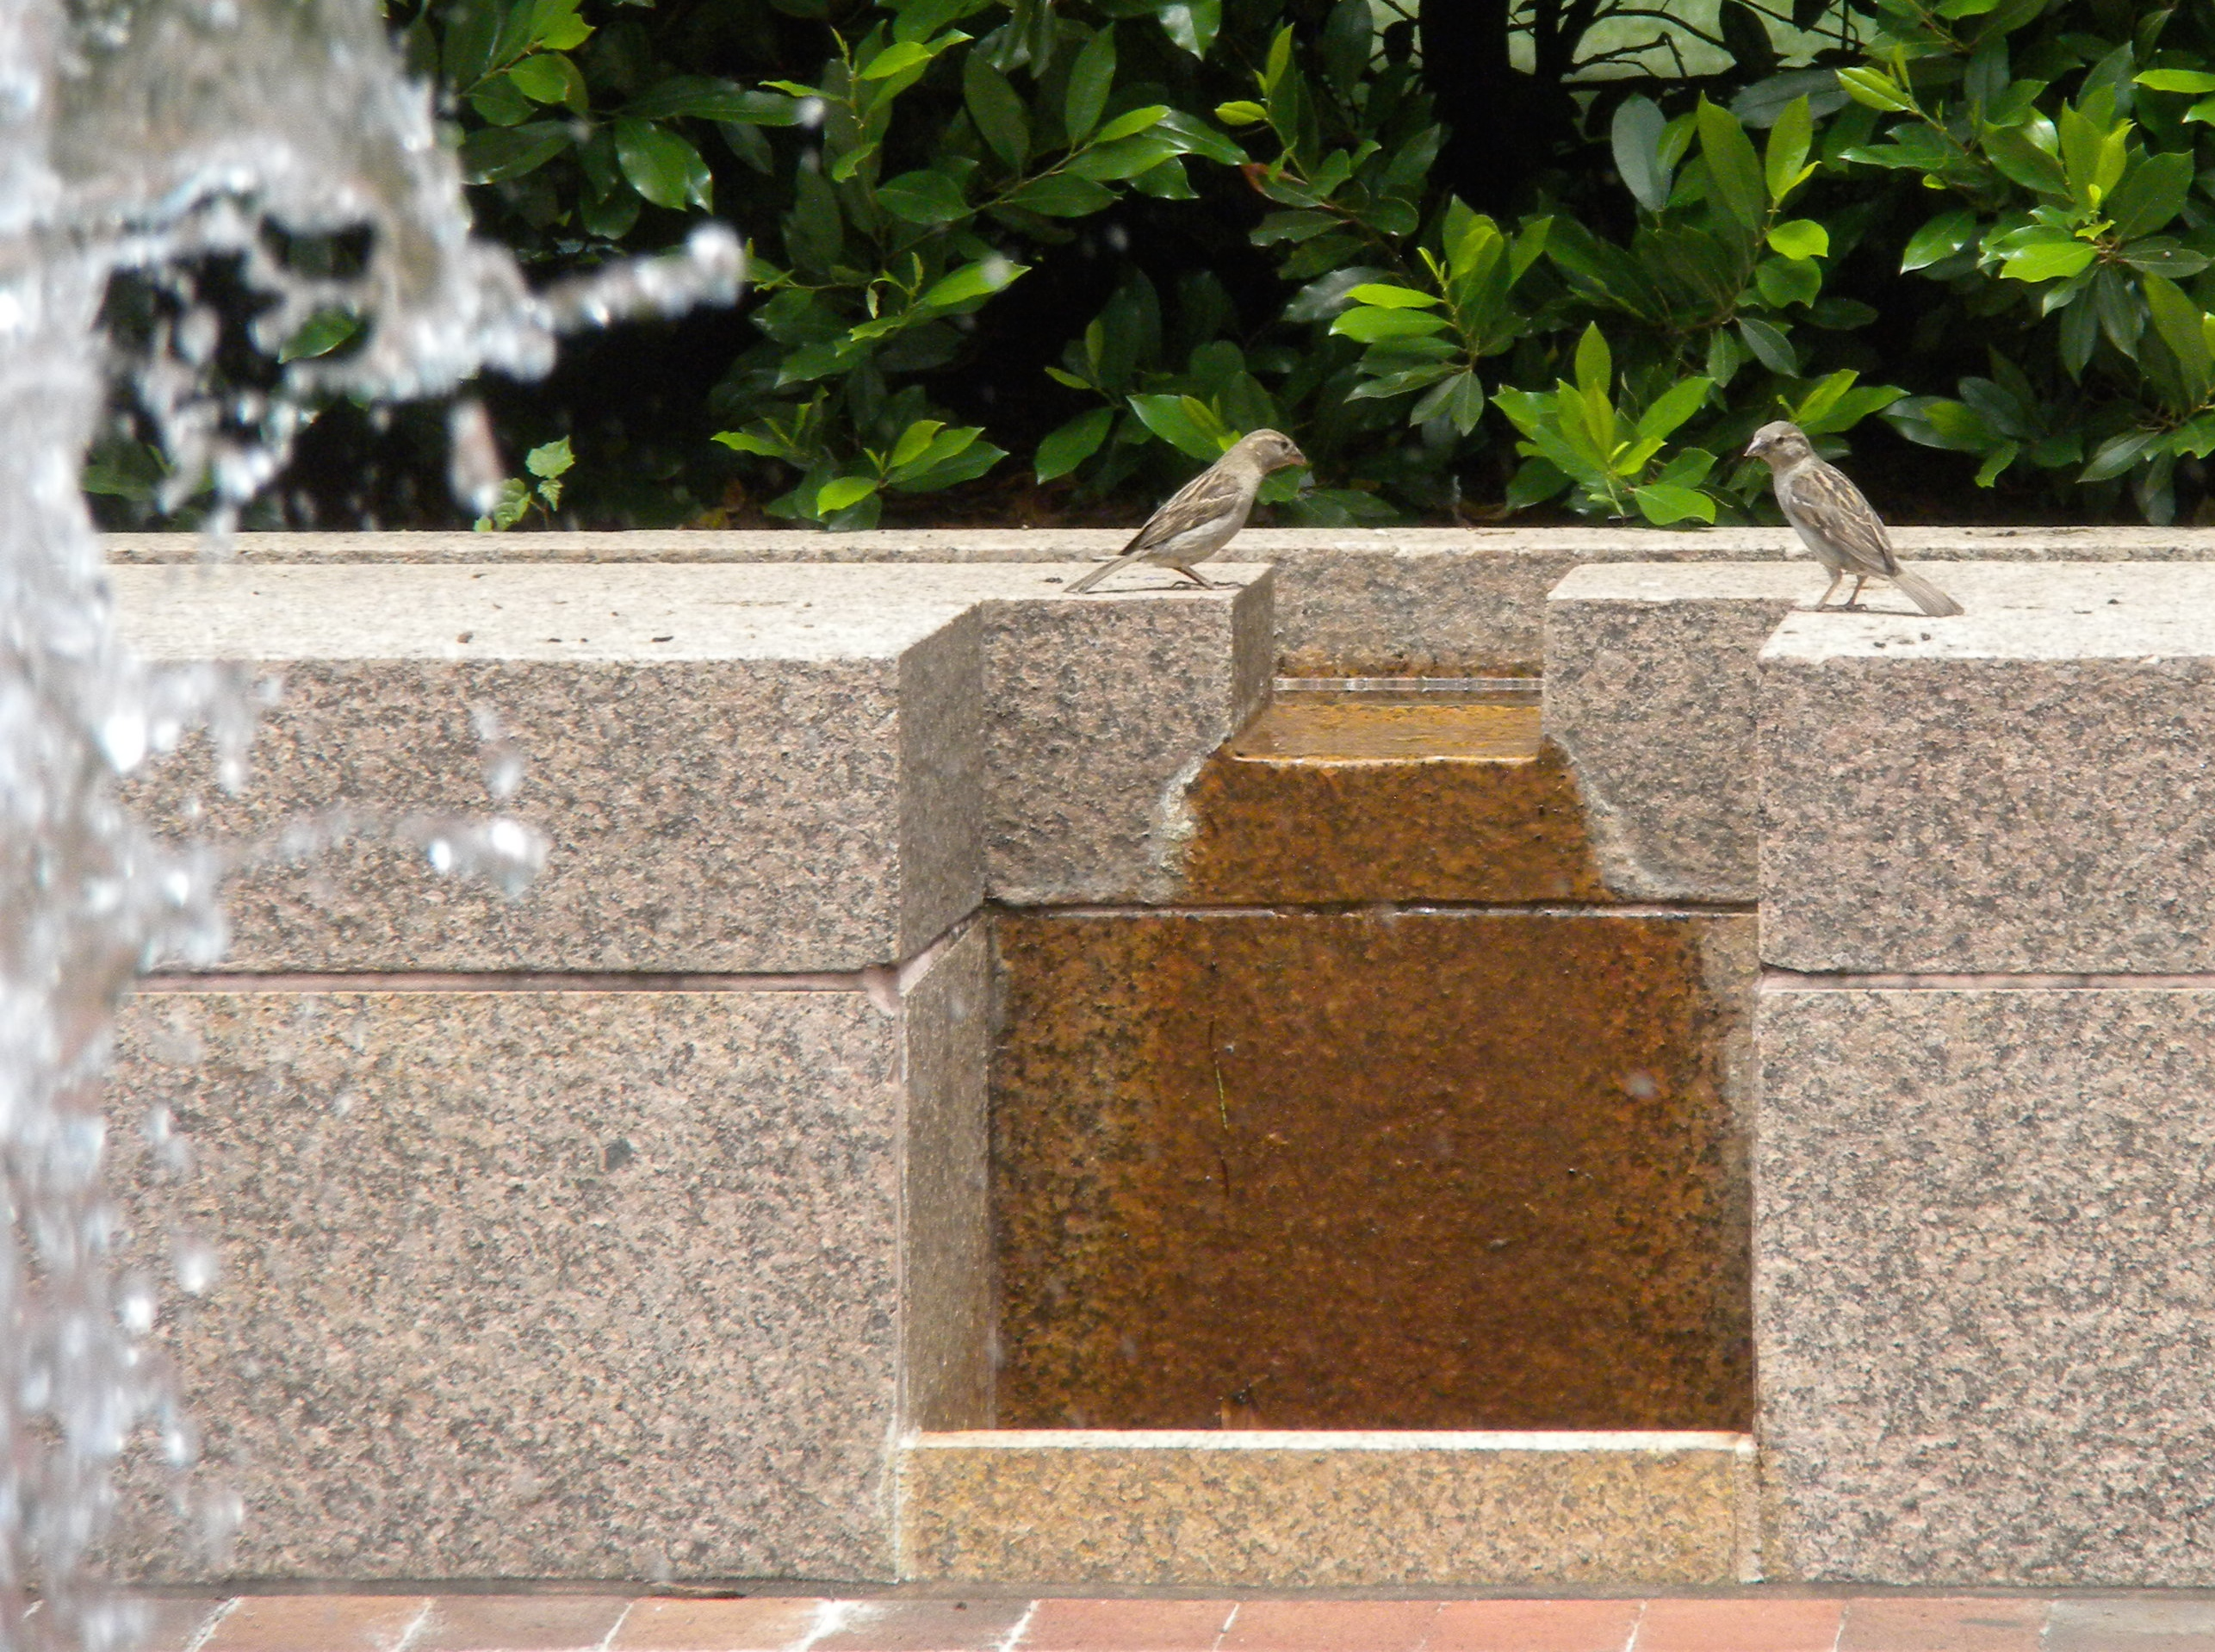 Female House Sparrows on Fountain Ledge.